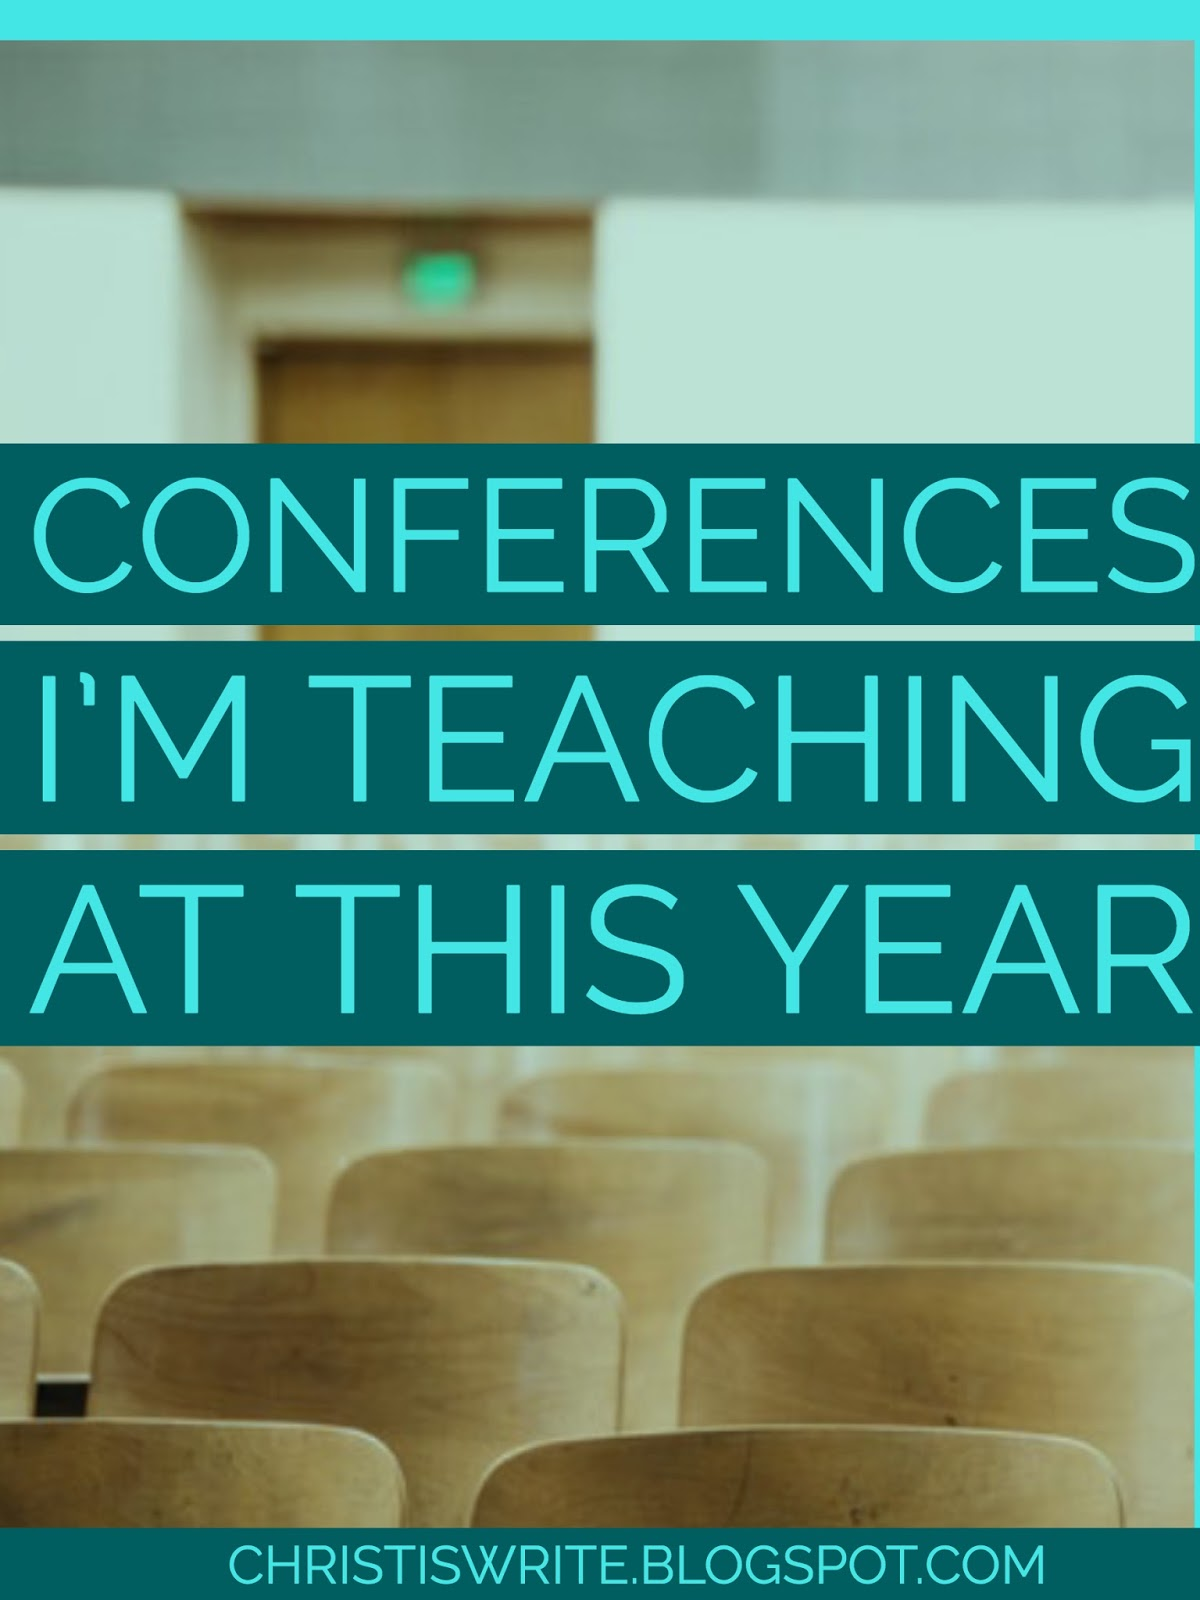 Tessa Emily Hall Christ Is Write Conferences Im Teaching At This Teachherpleaseblogspotcom If You Can Make It To Any Of The Below Please Let Me Know Id Love Meet